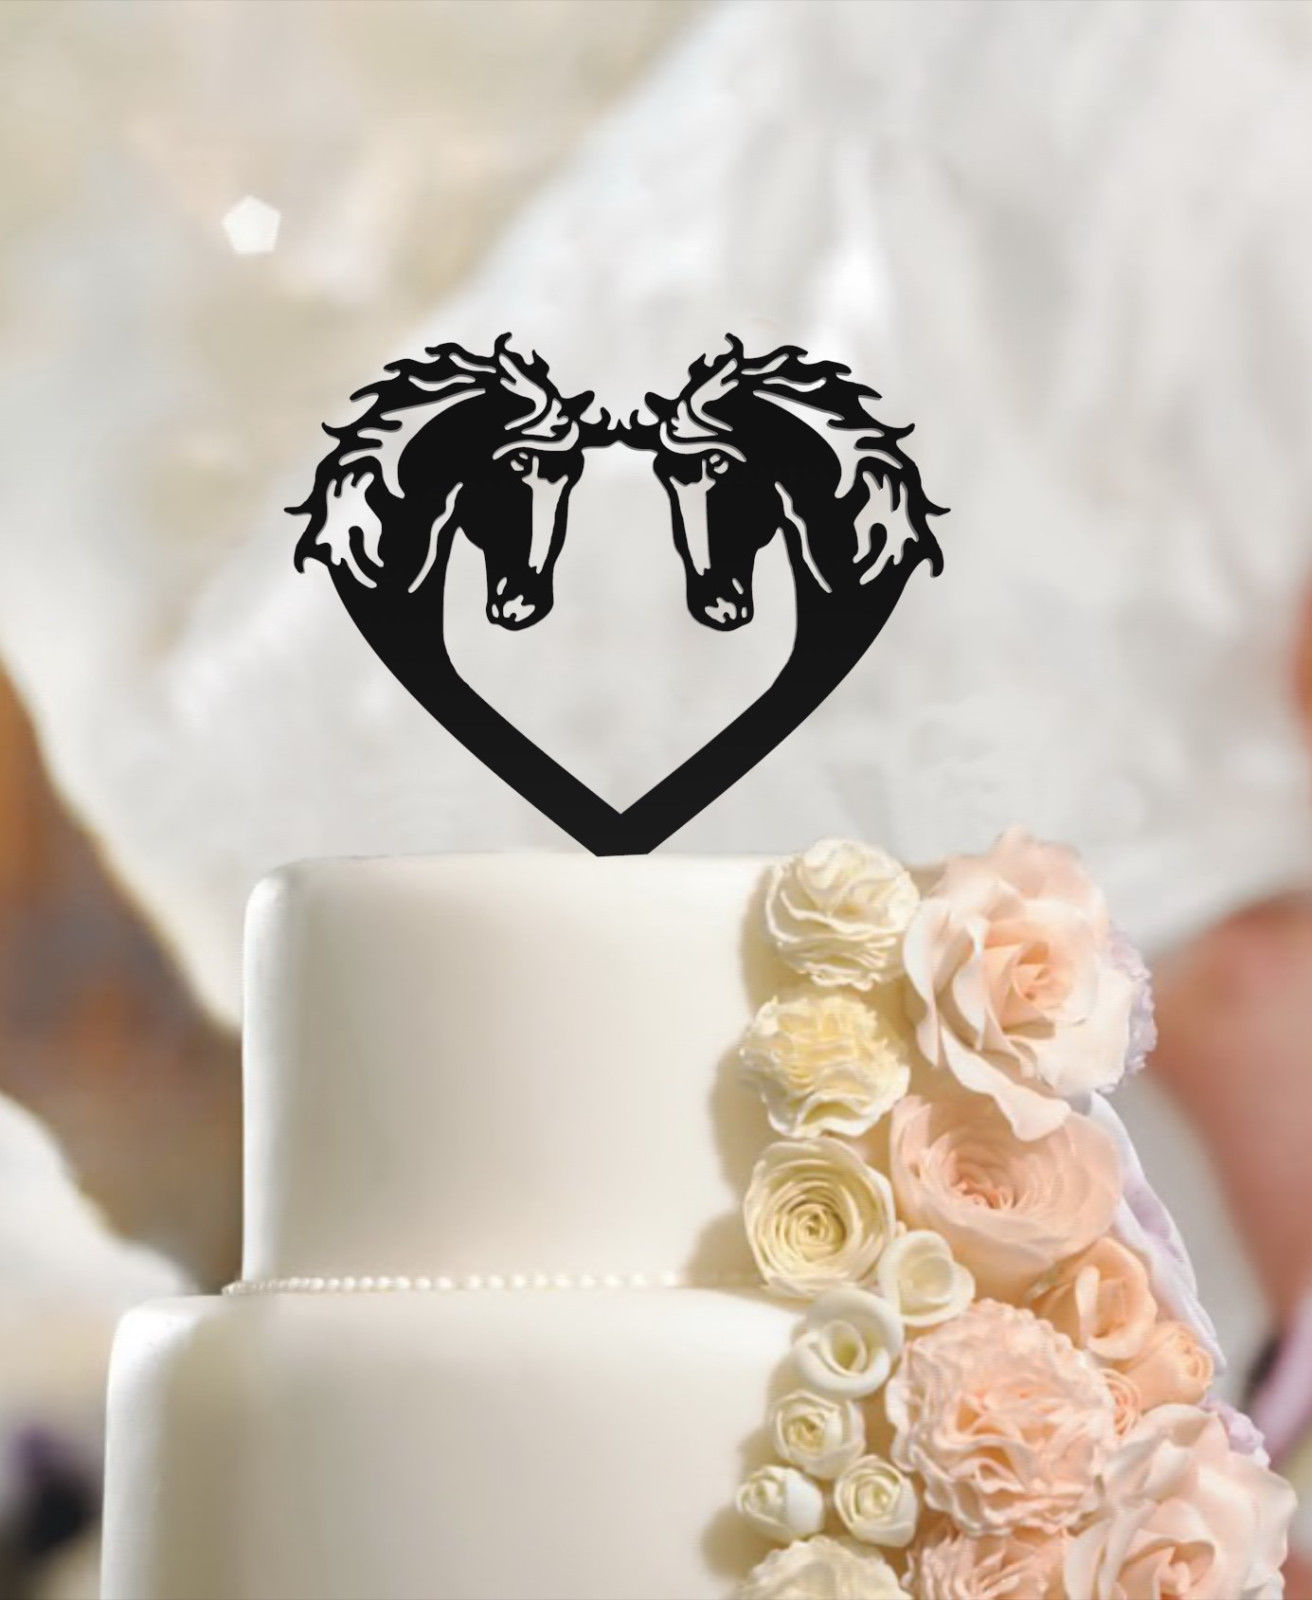 Horse Cake Toppers Shop Horse Cake Toppers Online